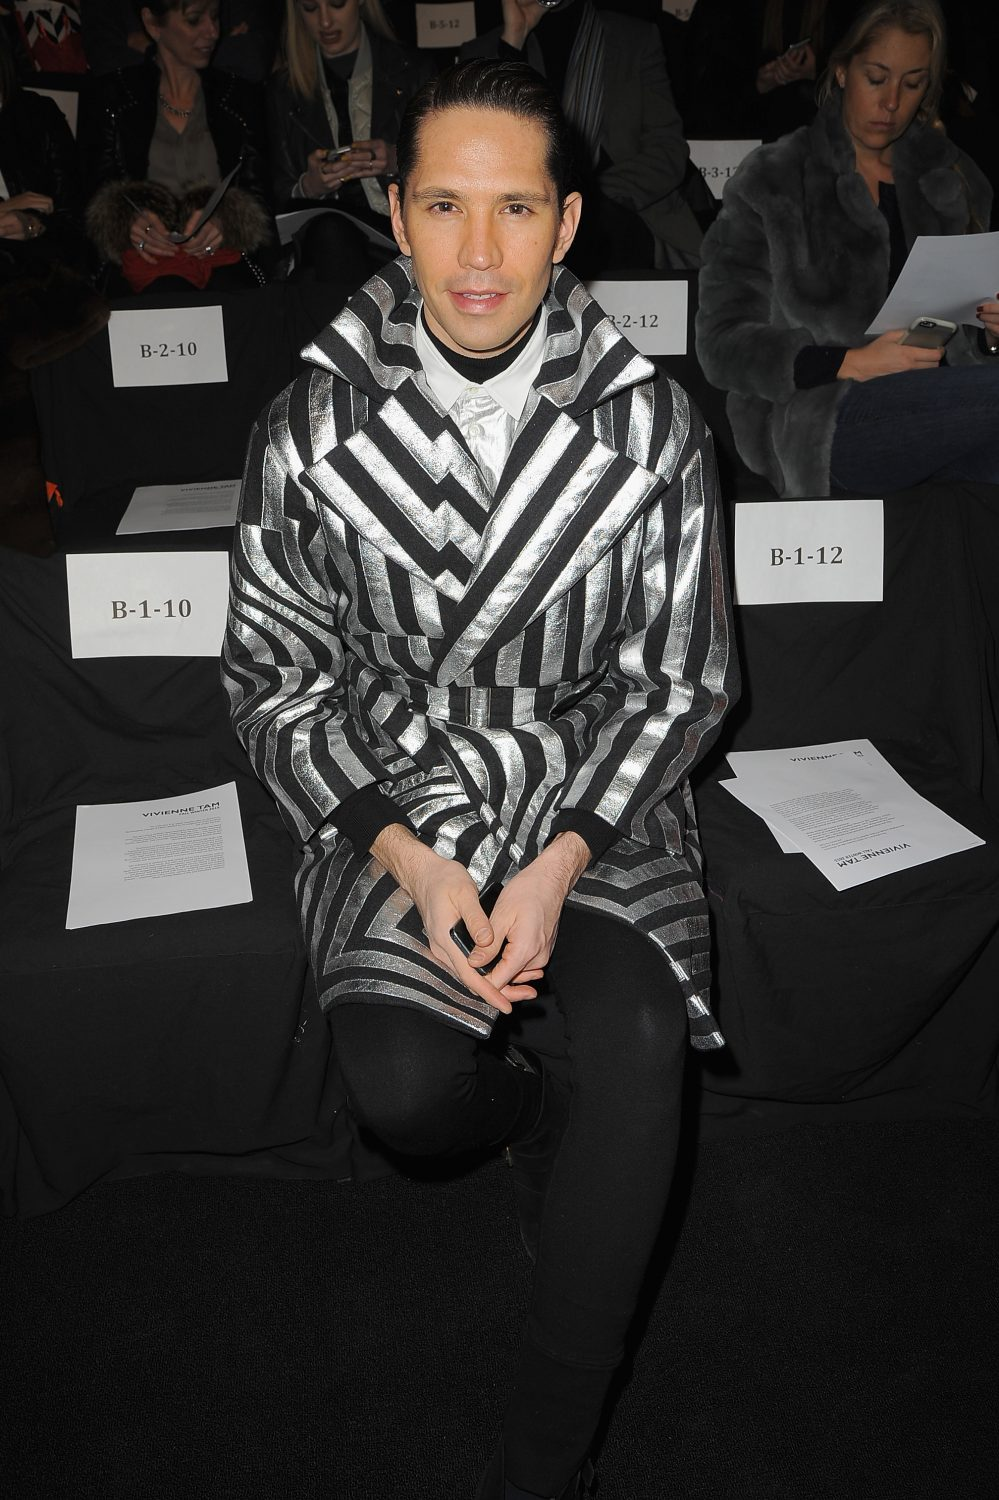 Vivienne Tam Fall 2015 Runway Show Front Row & Backstage